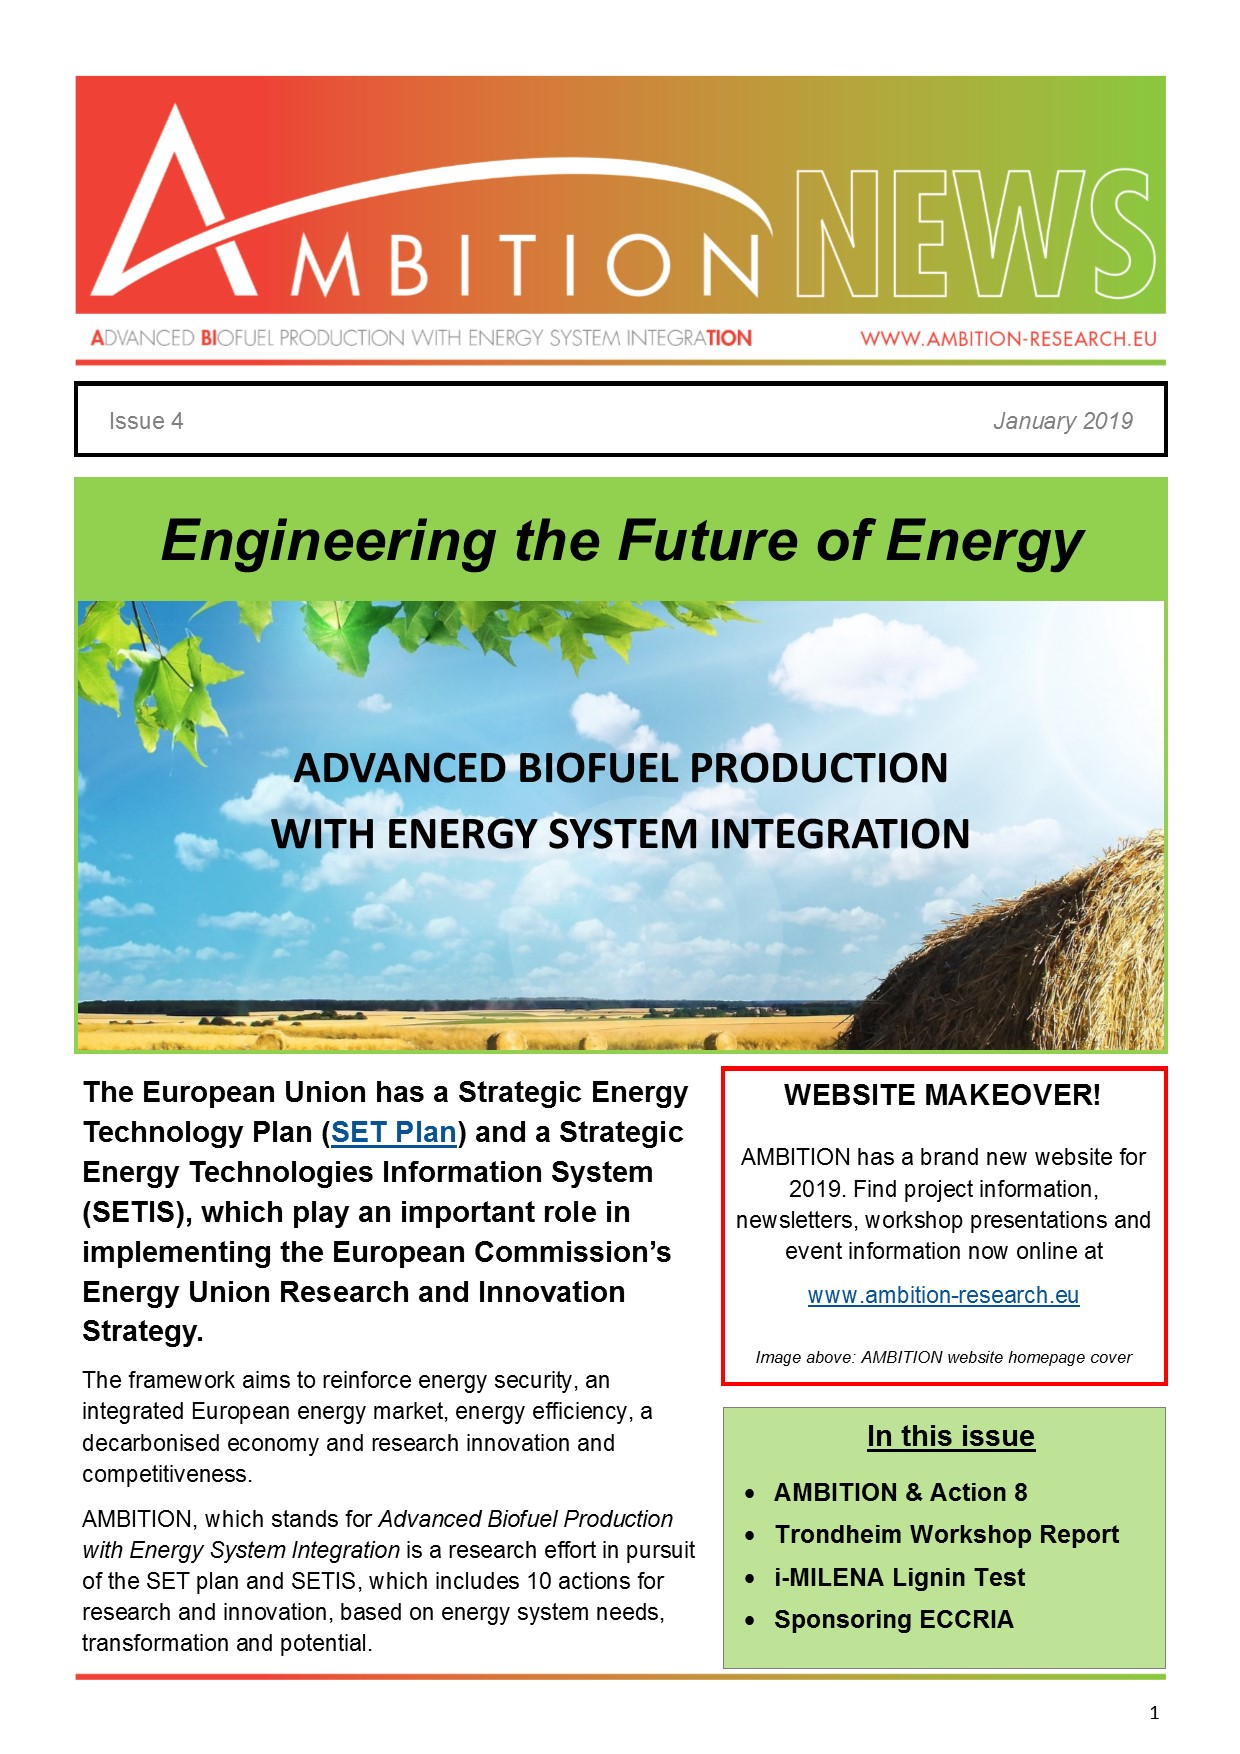 Engineering the Future of Energy - Issue 4 - Ambition Research